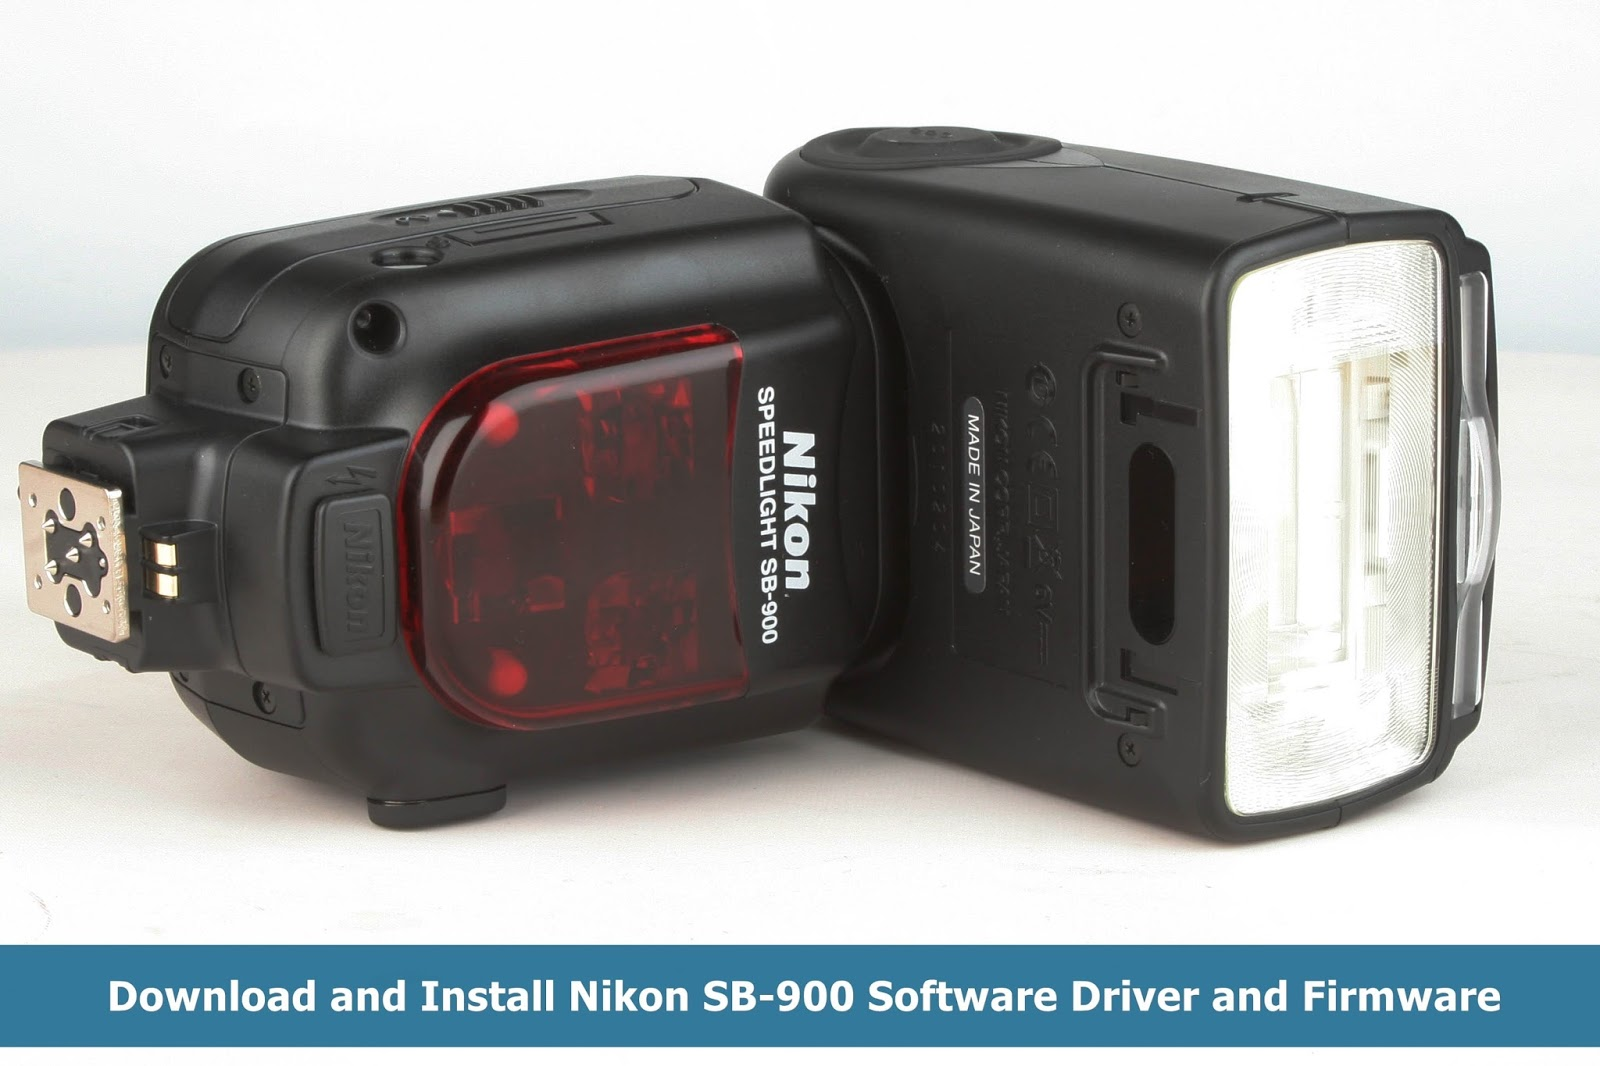 Nikon SB-900 Software Driver and Firmware